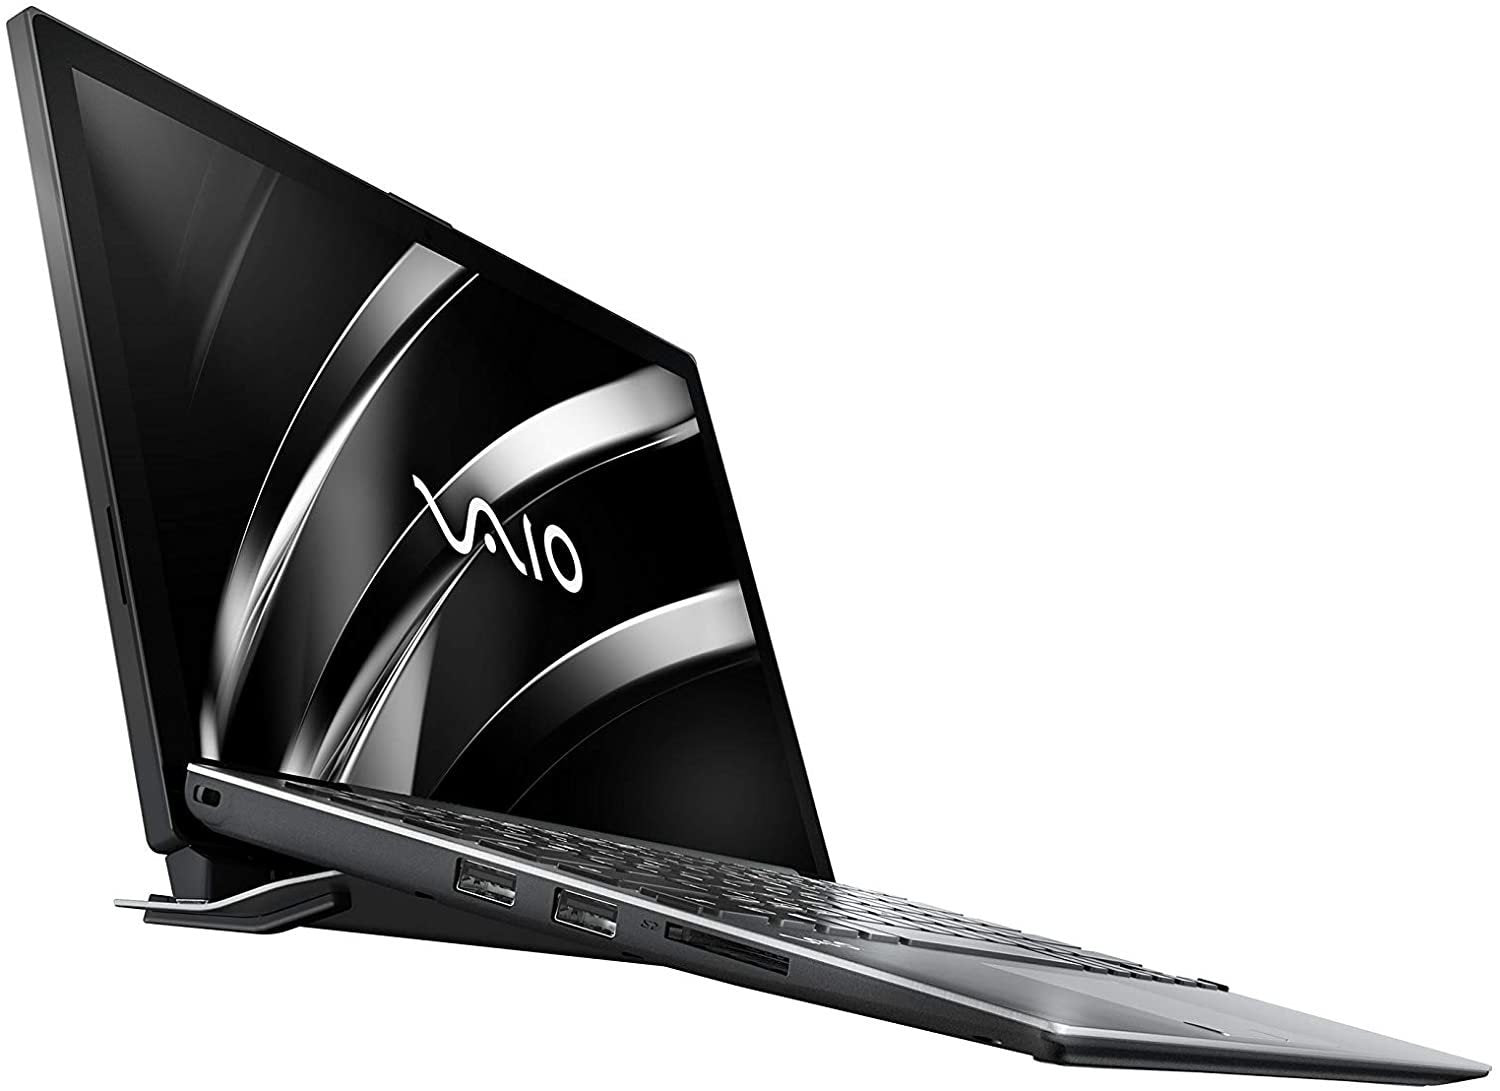 VAIO A12 Laptop-Black (i5/8GB/256GB/Win 10 Pro)